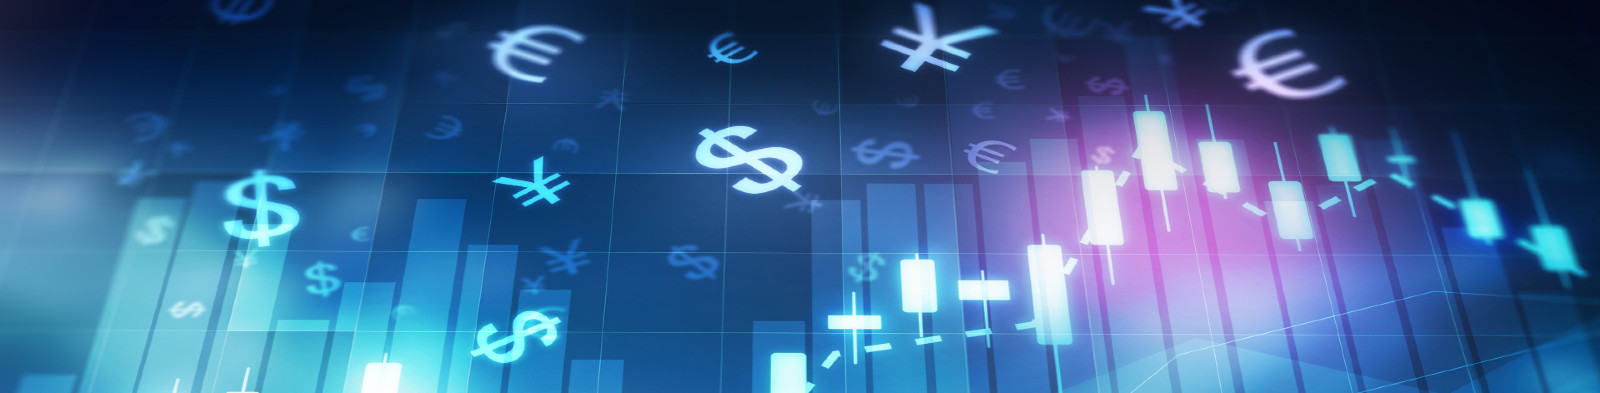 Graphic featuring currency symbols and financial charts